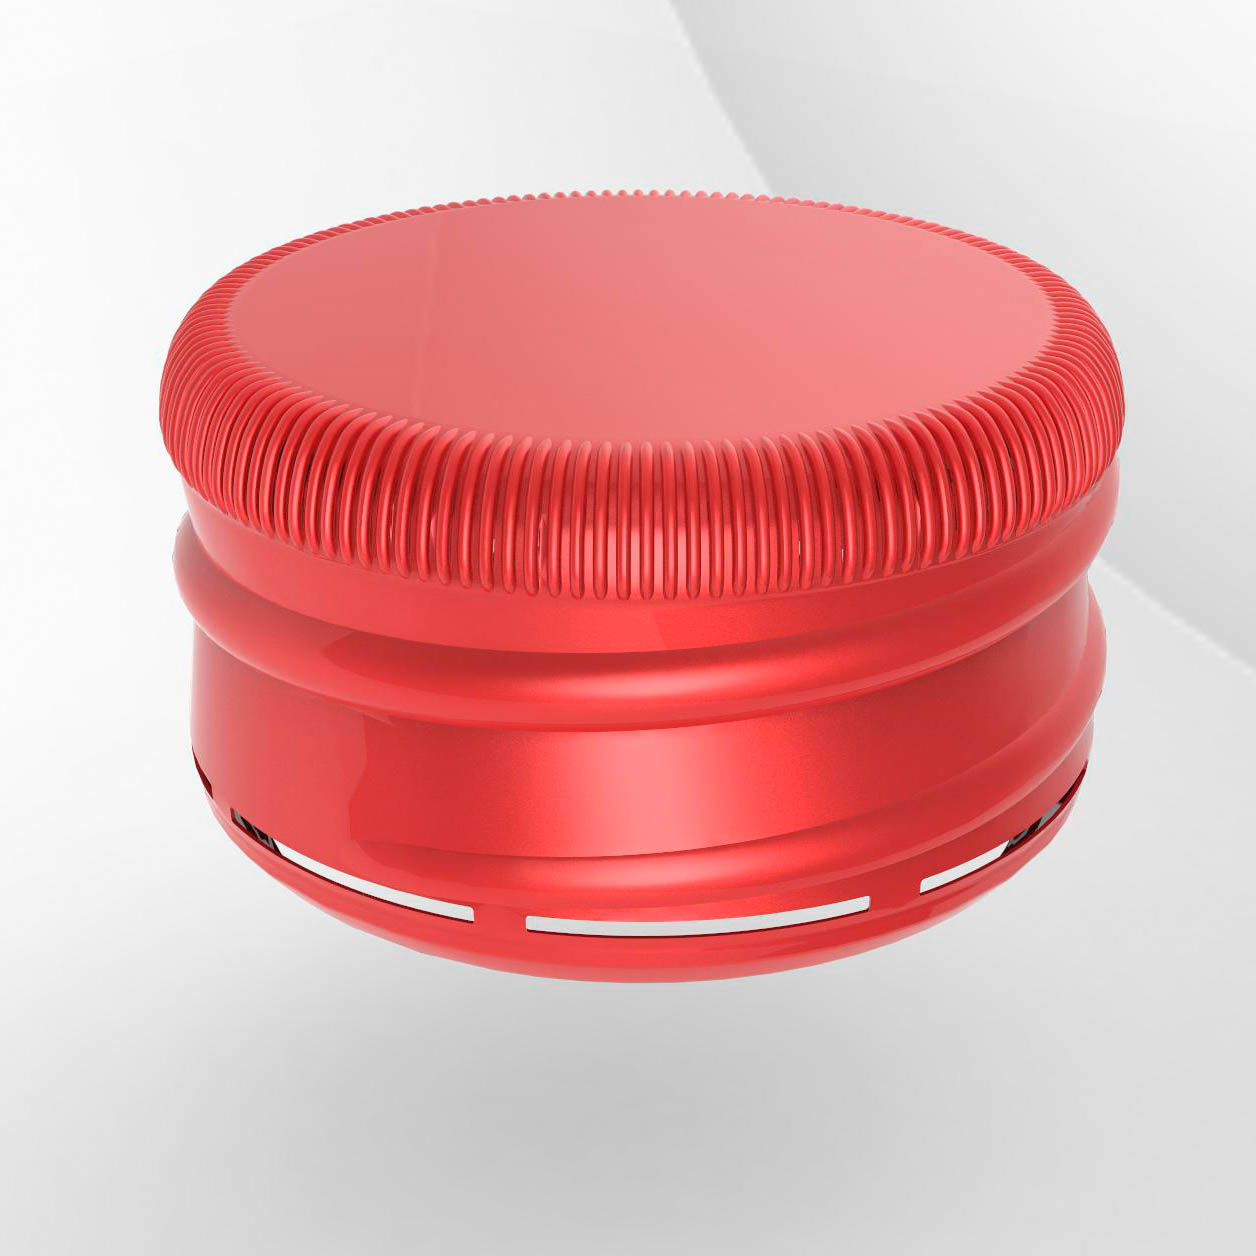 bottle screw cap 3d model 3ds max fbx 3dm obj 269432